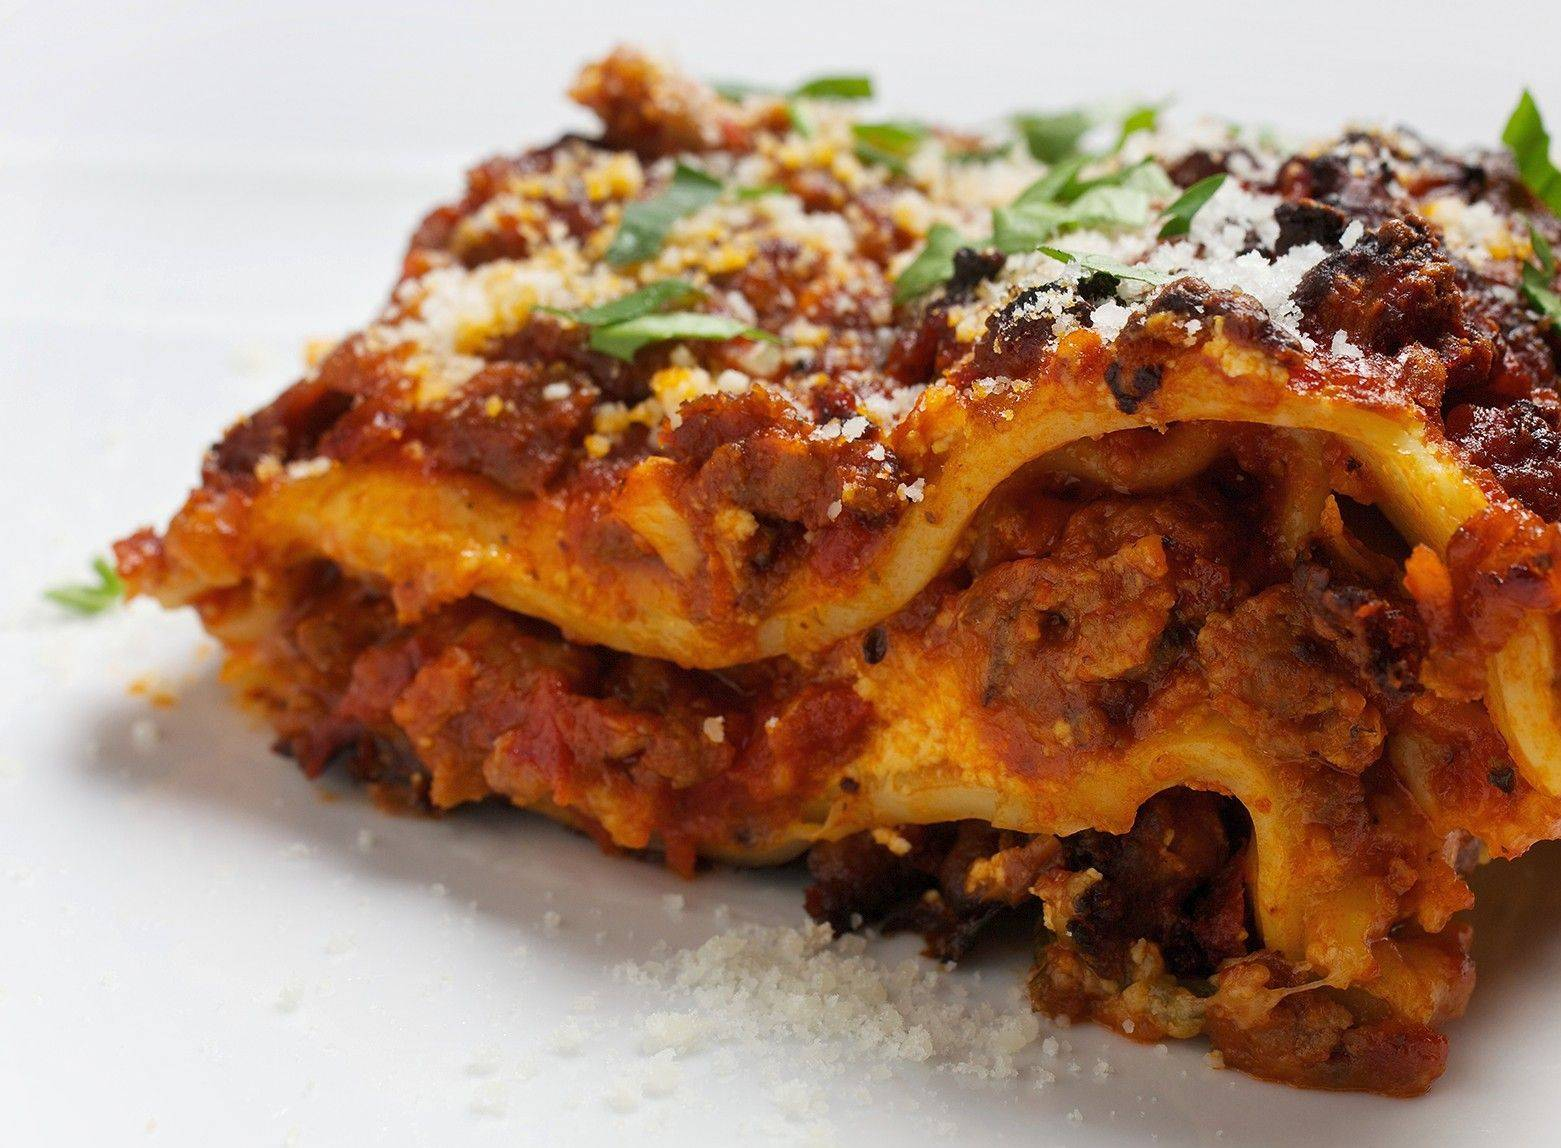 John Chandler�s lasagna has reigned as the most popular recipe on AllRecipes.com for more than a decade. Chandler says he�s �definitely not a foodie� but he loves to cook.